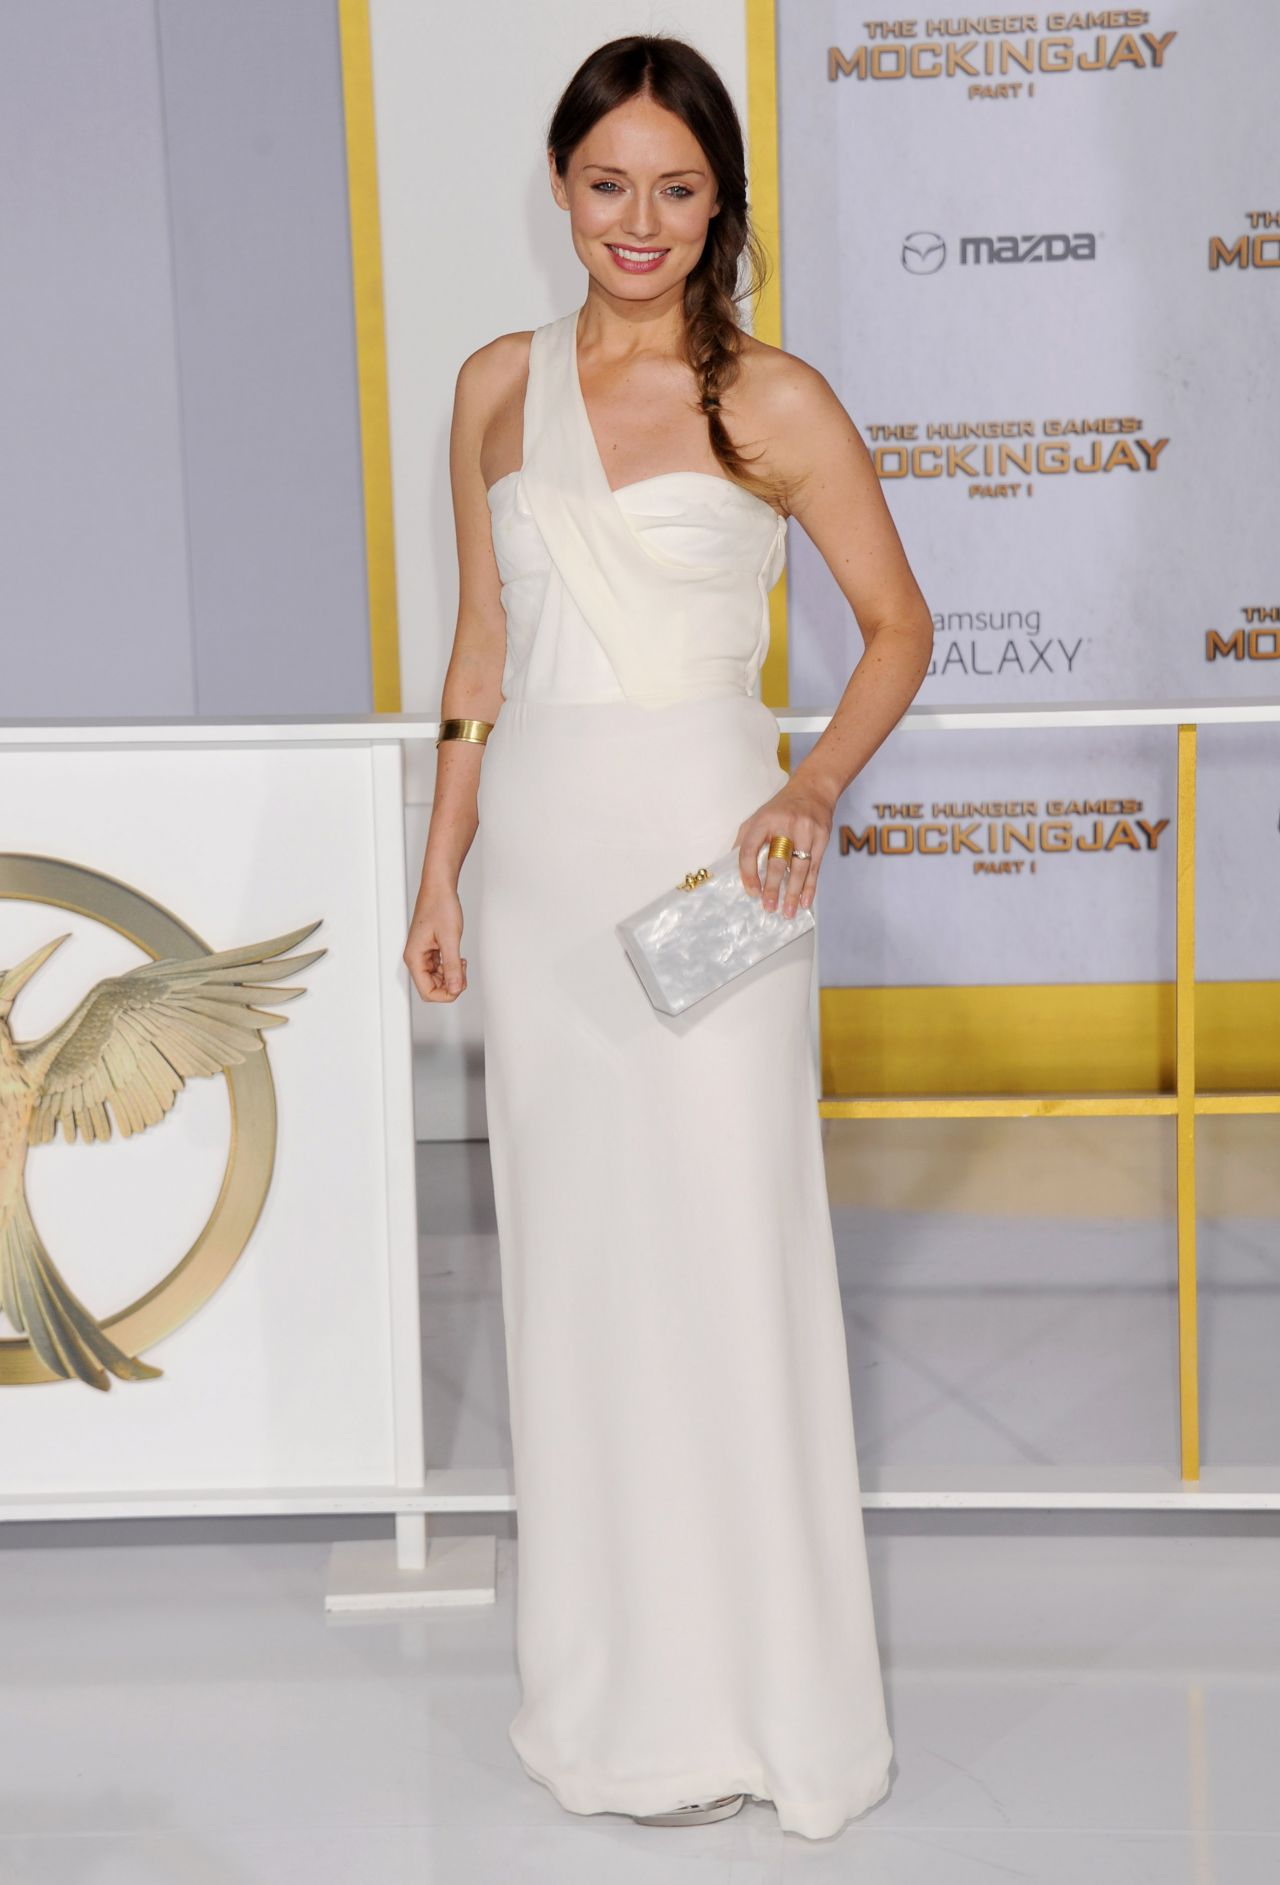 THE HUNGER GAMES: MOCKINGJAY ­PART 1 Premiere in Los Angeles - Laura Haddock